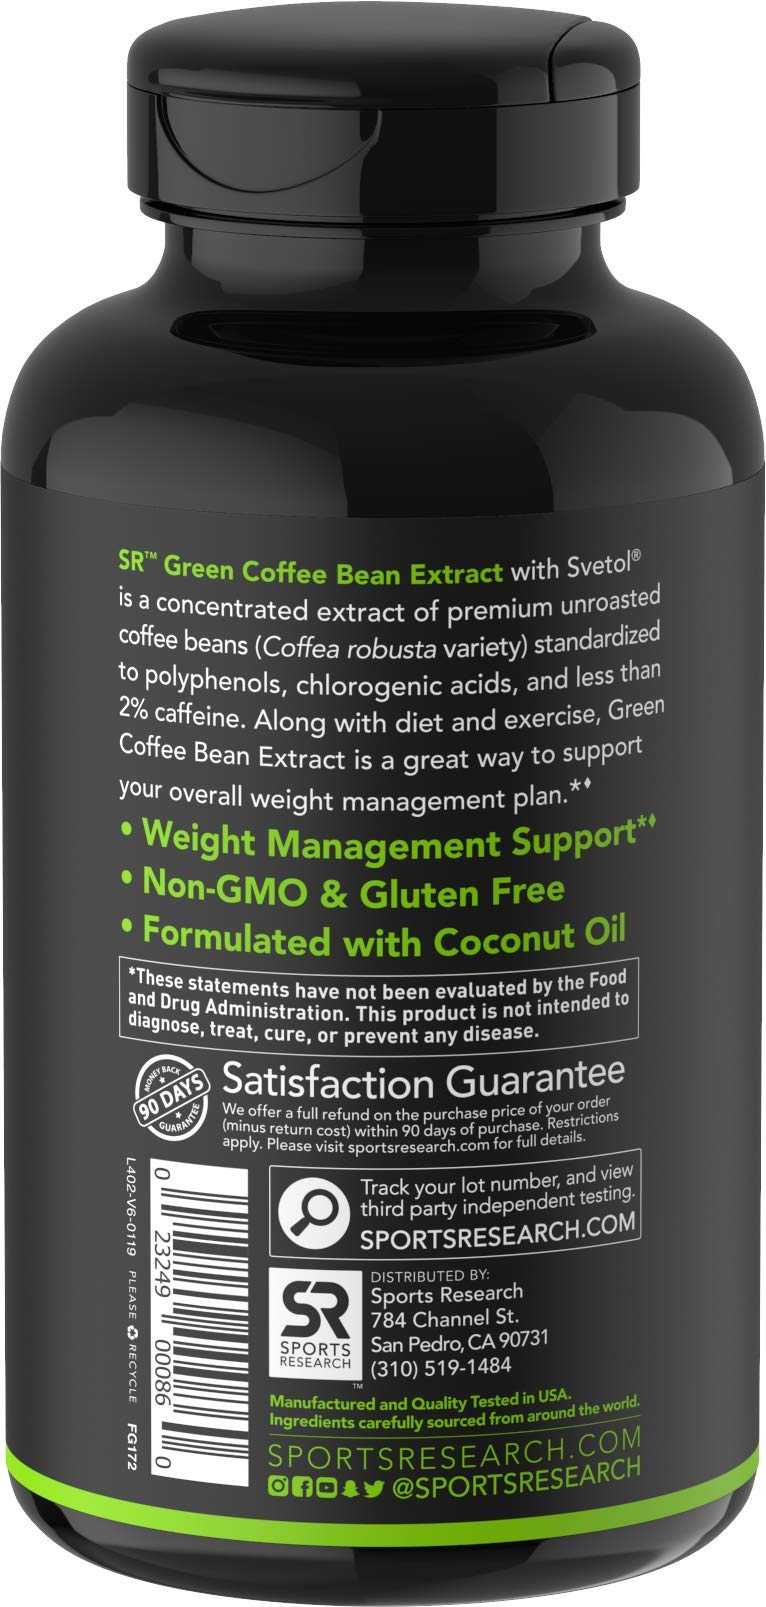 SVETOL Green Coffee Bean Extract, 90 Liquid Softgels with 400mg of Clinically-Proven Svetol Per Cap by Sports Research (Image #6)